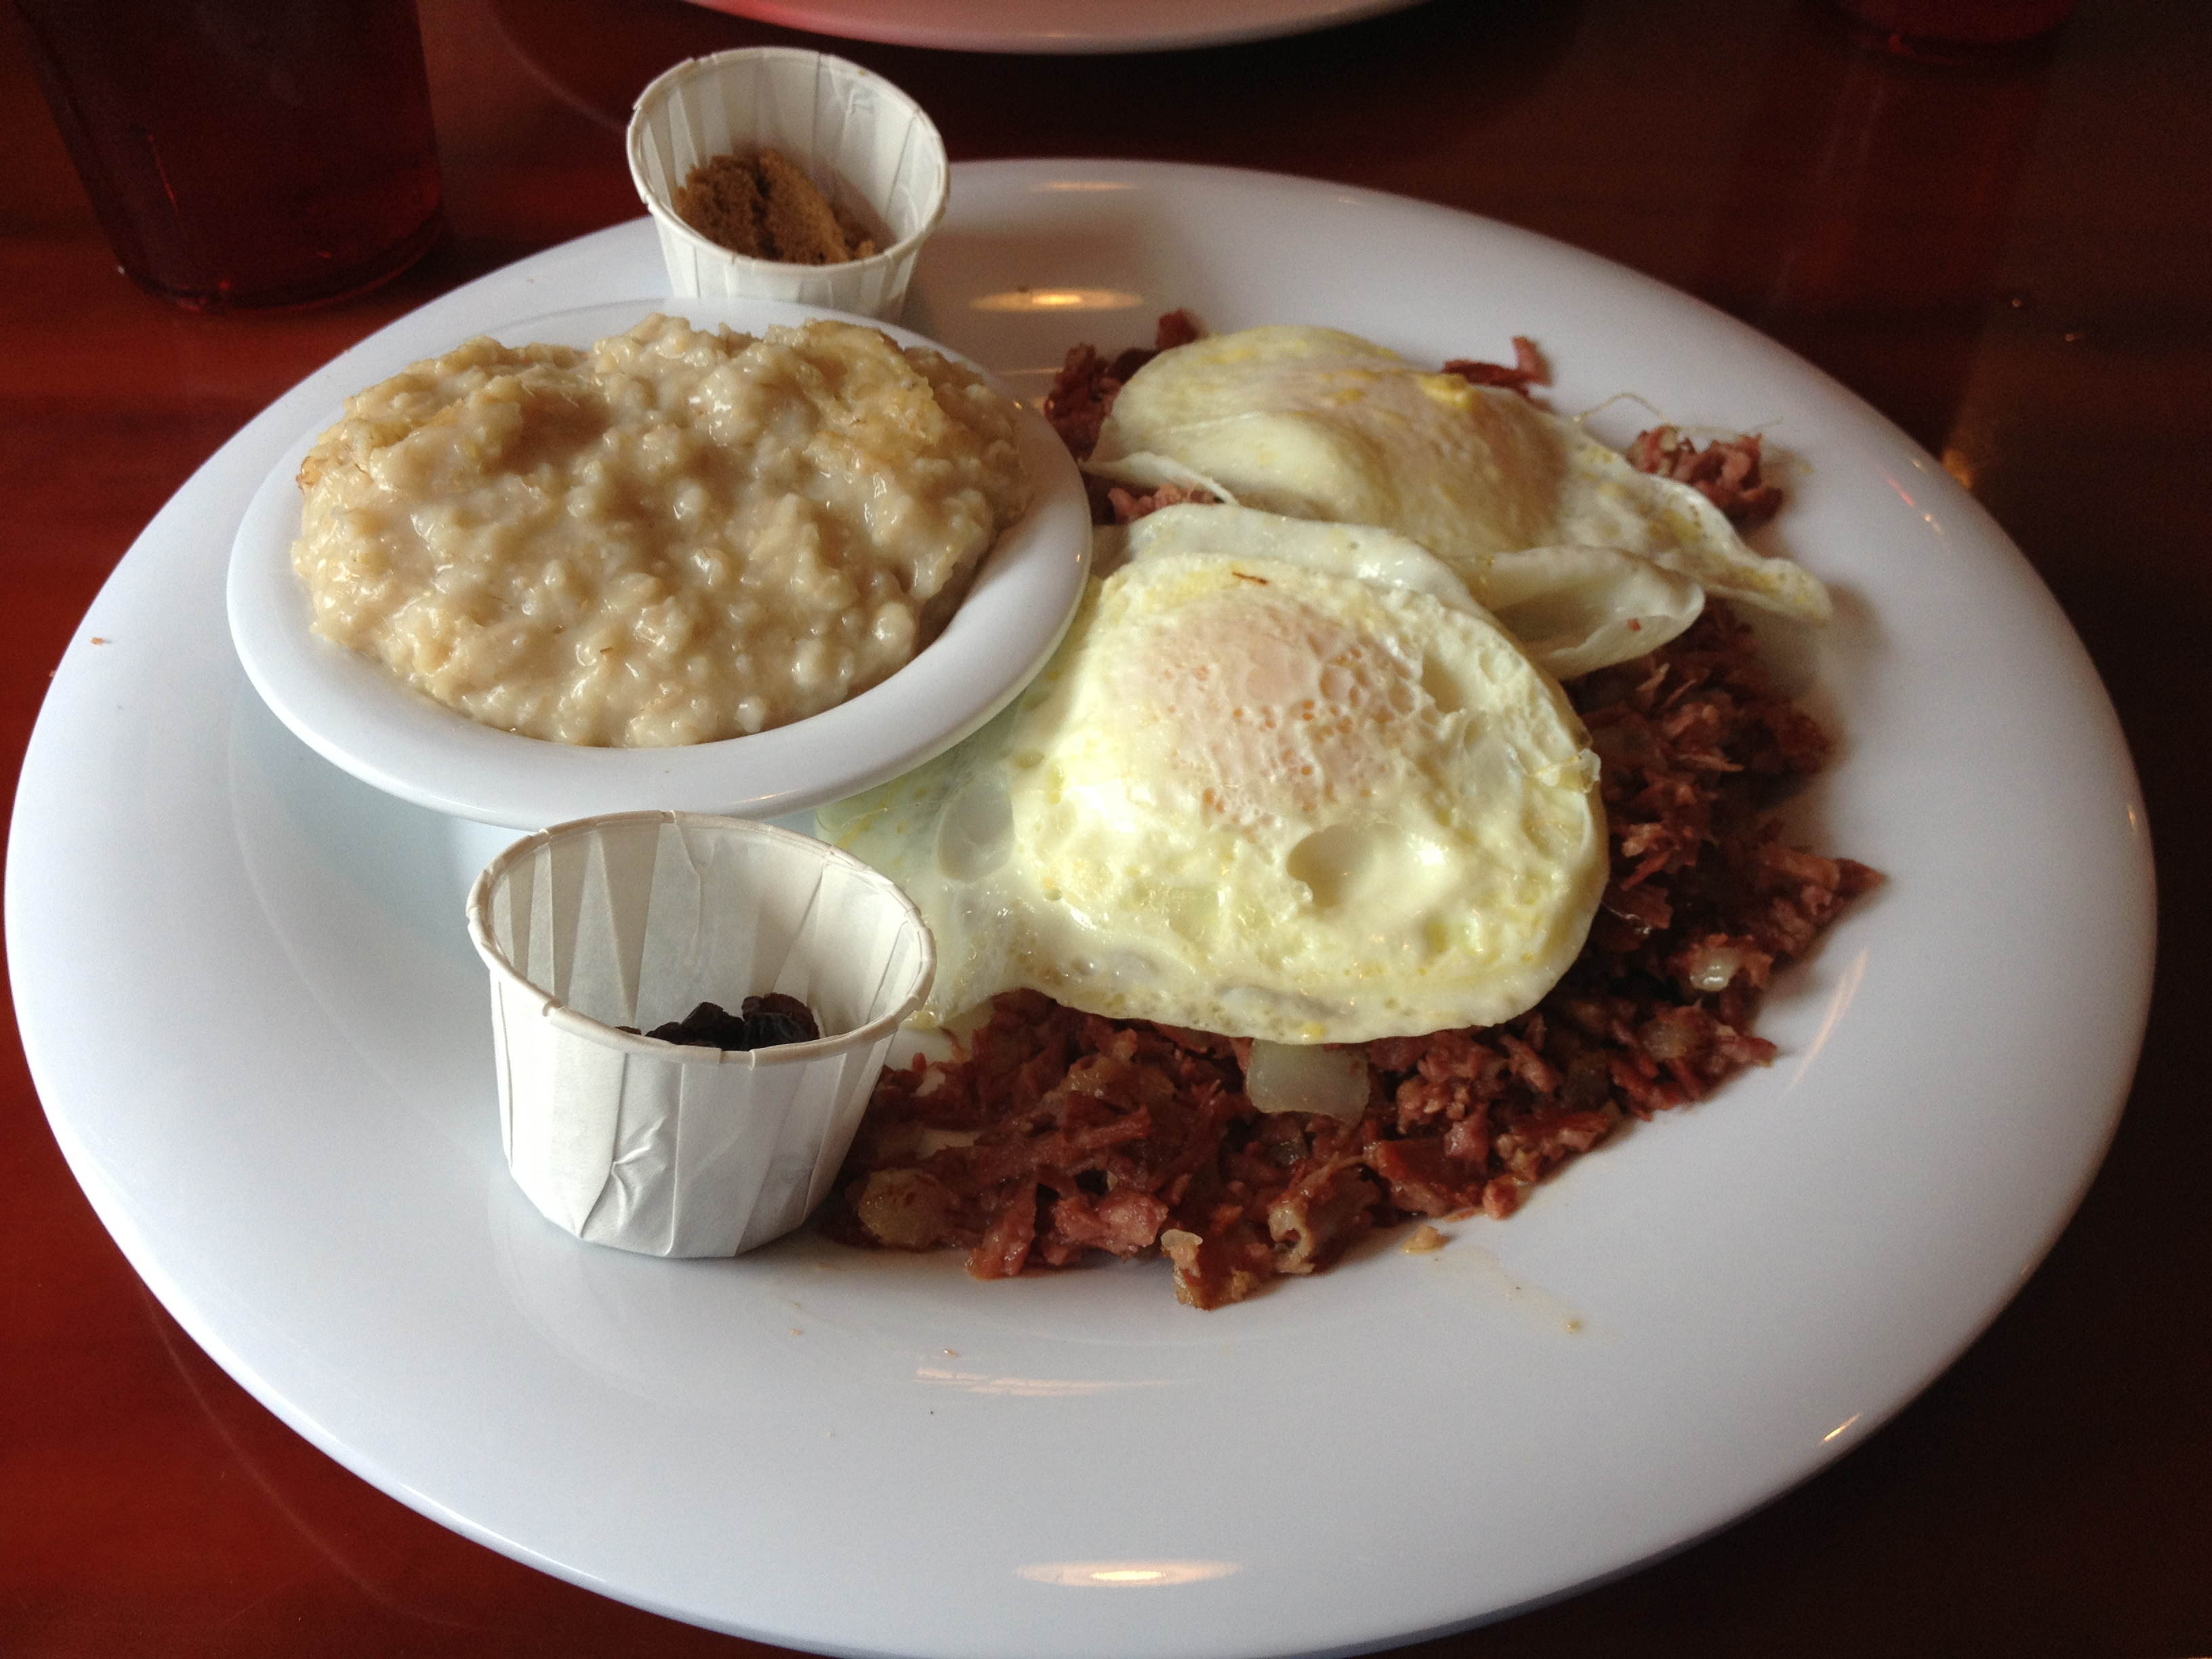 Corned beef hash, two over medium eggs, and oatmeal...yum!